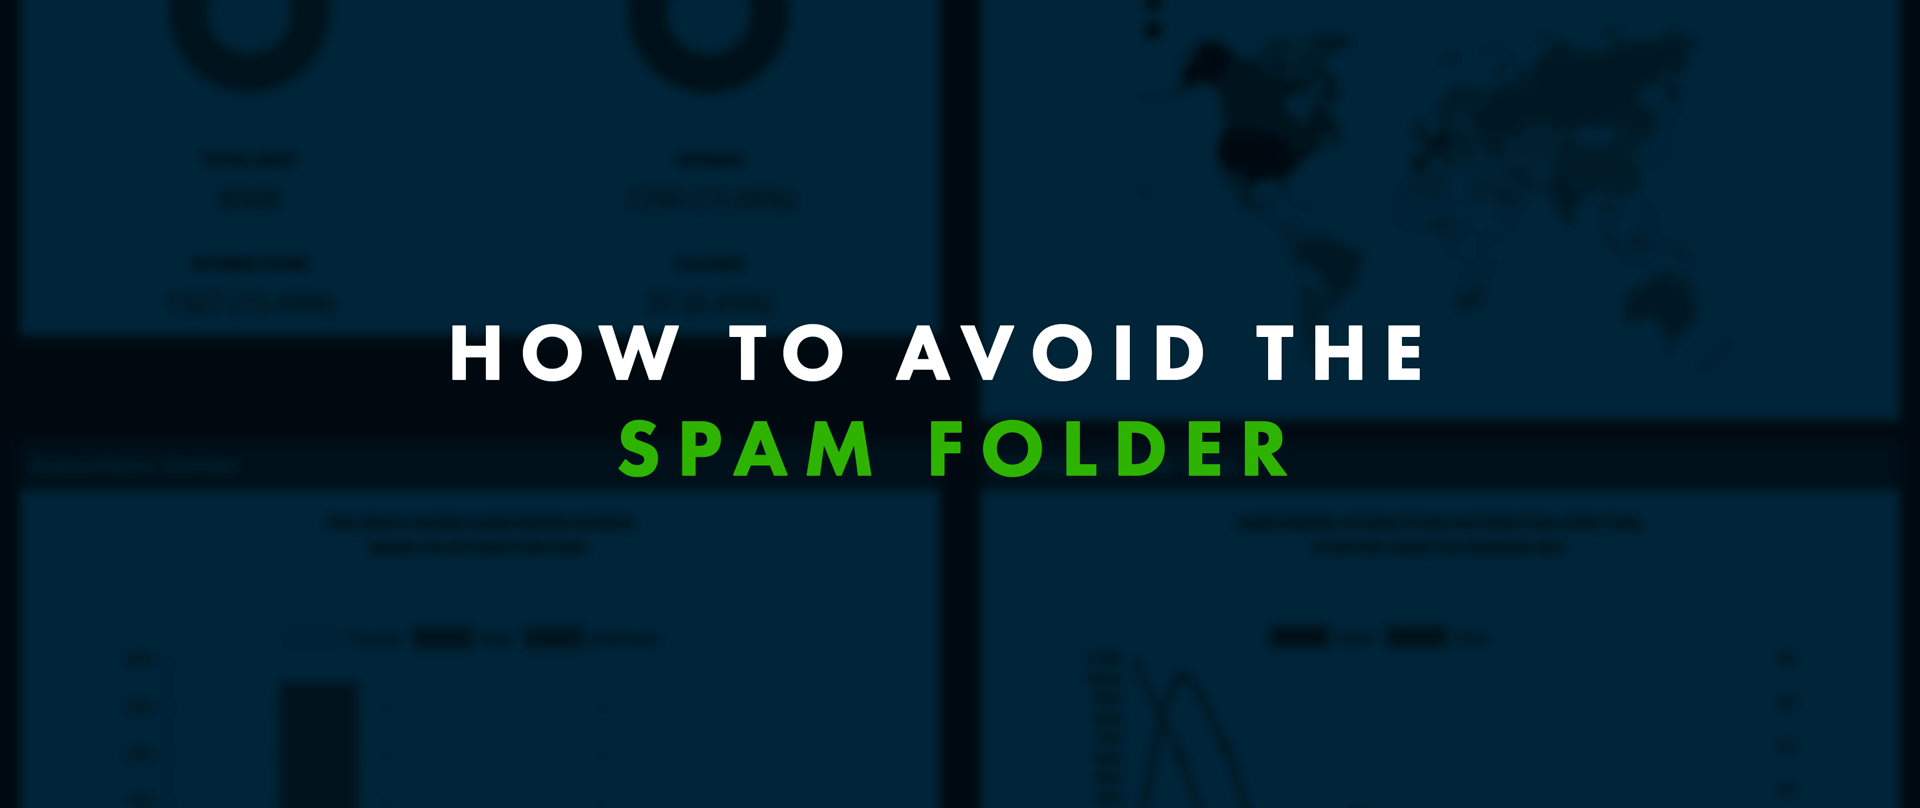 How to avoid the spam folder when sending emails with WordPress